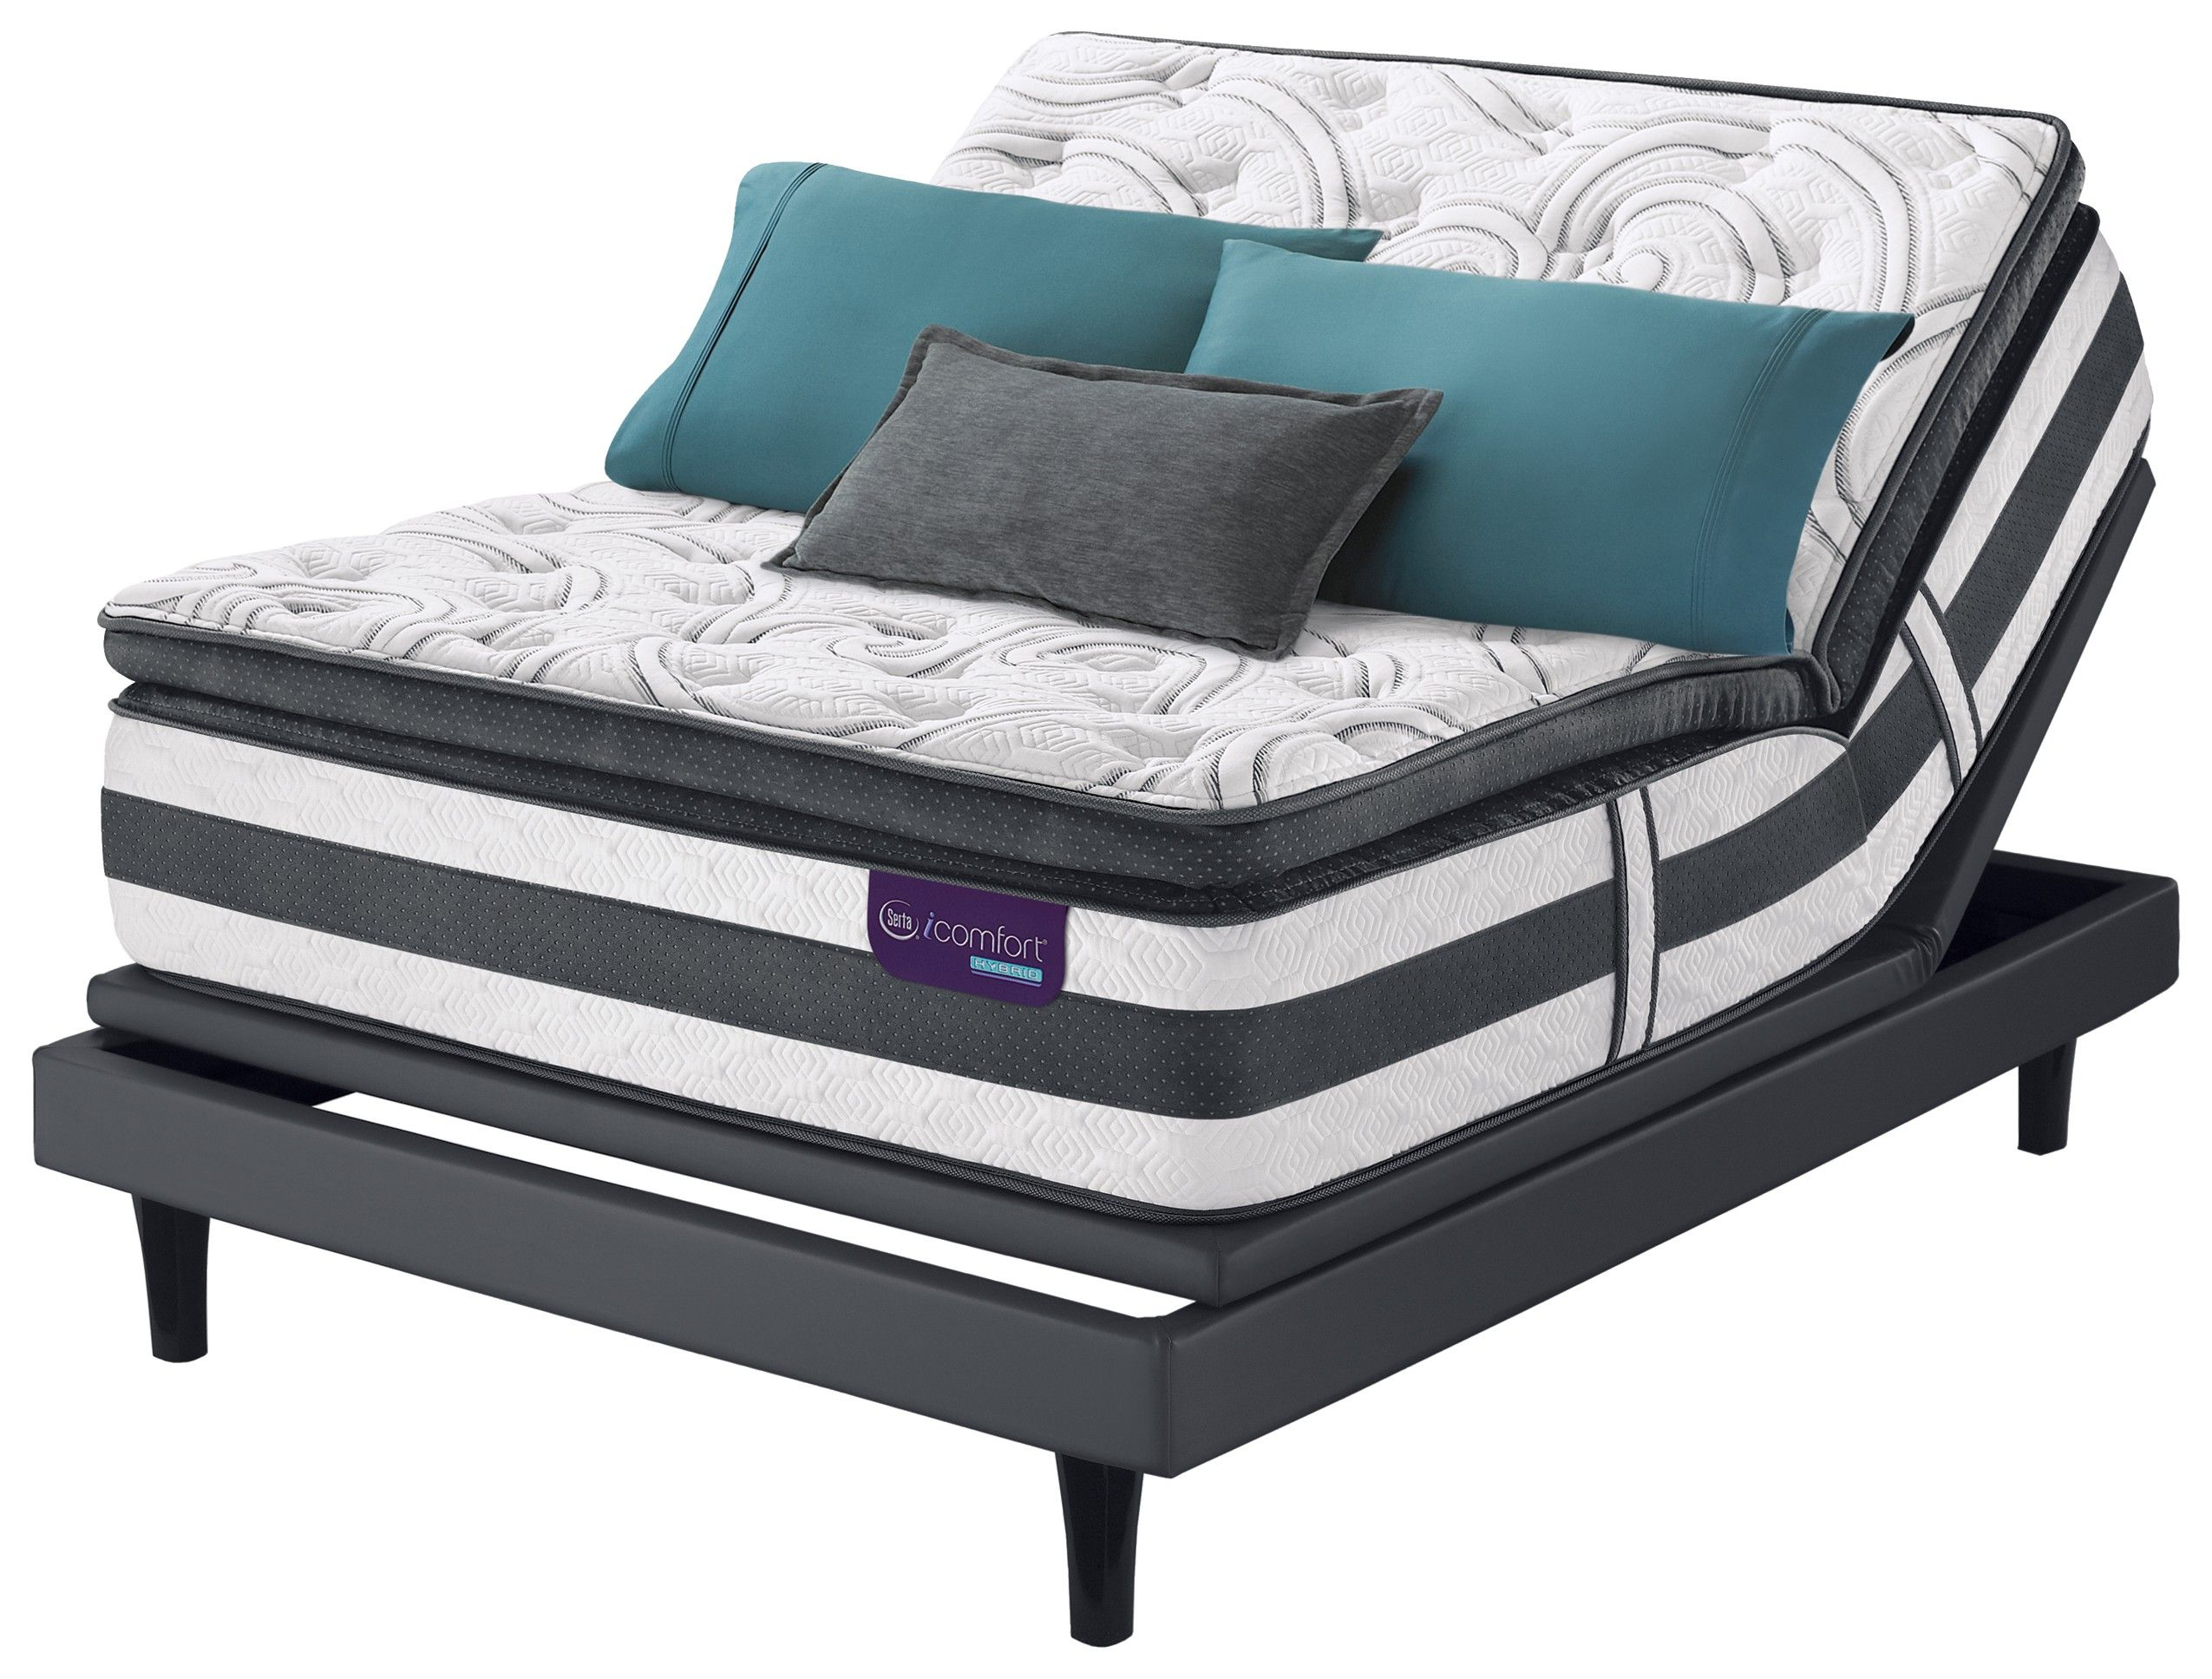 Serta Mattress Hybrid Advisor Super Pillow Top